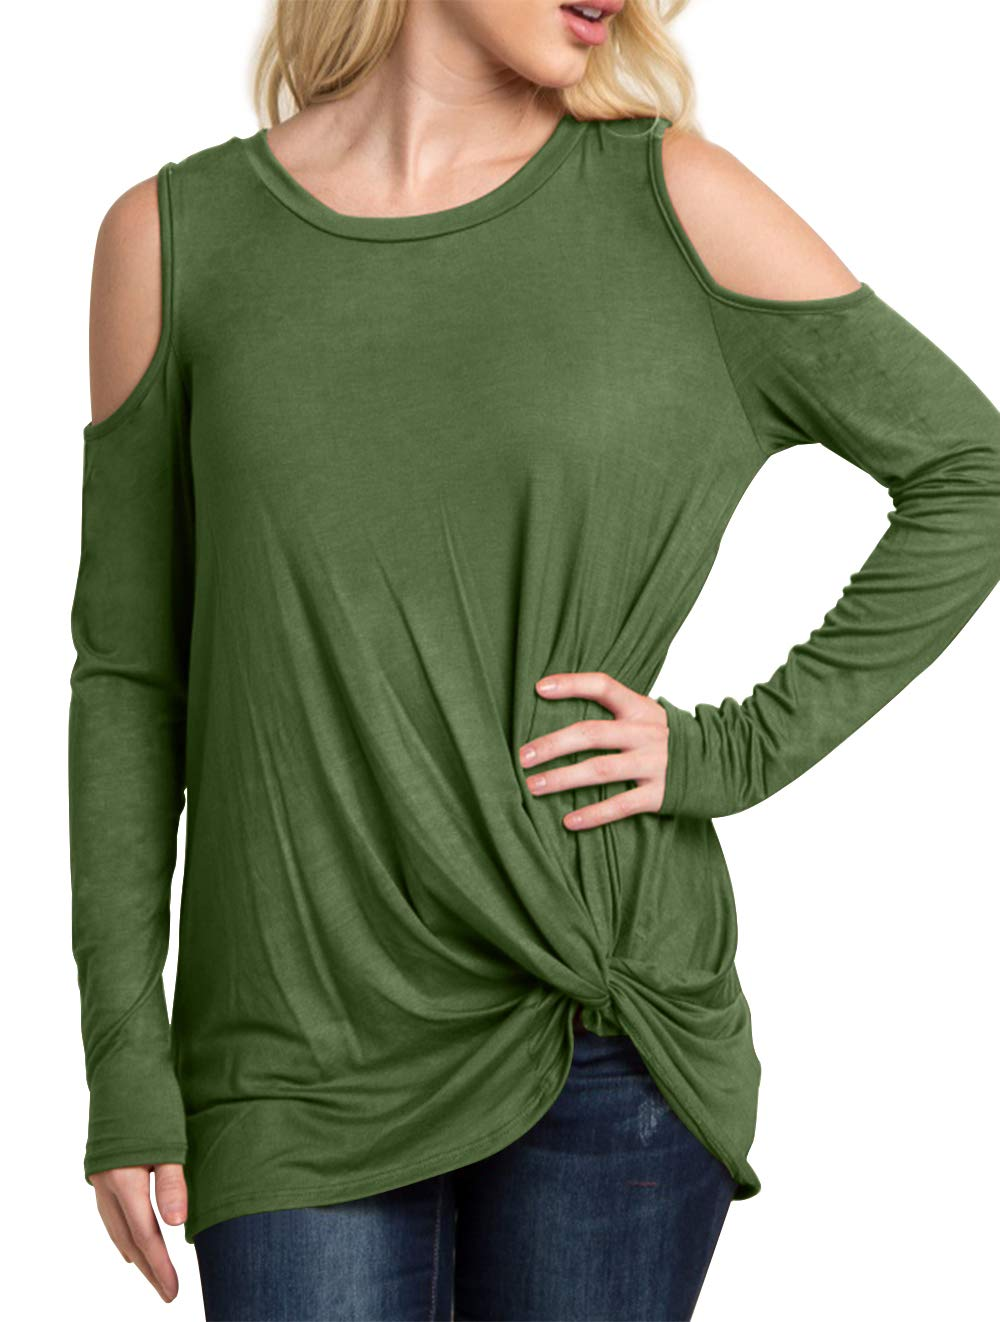 Eanklosco Women's Long Sleeve Cold Shoulder Cut Out T Shirts Casual Knot Front Tunic Tops (Amy Green, S)